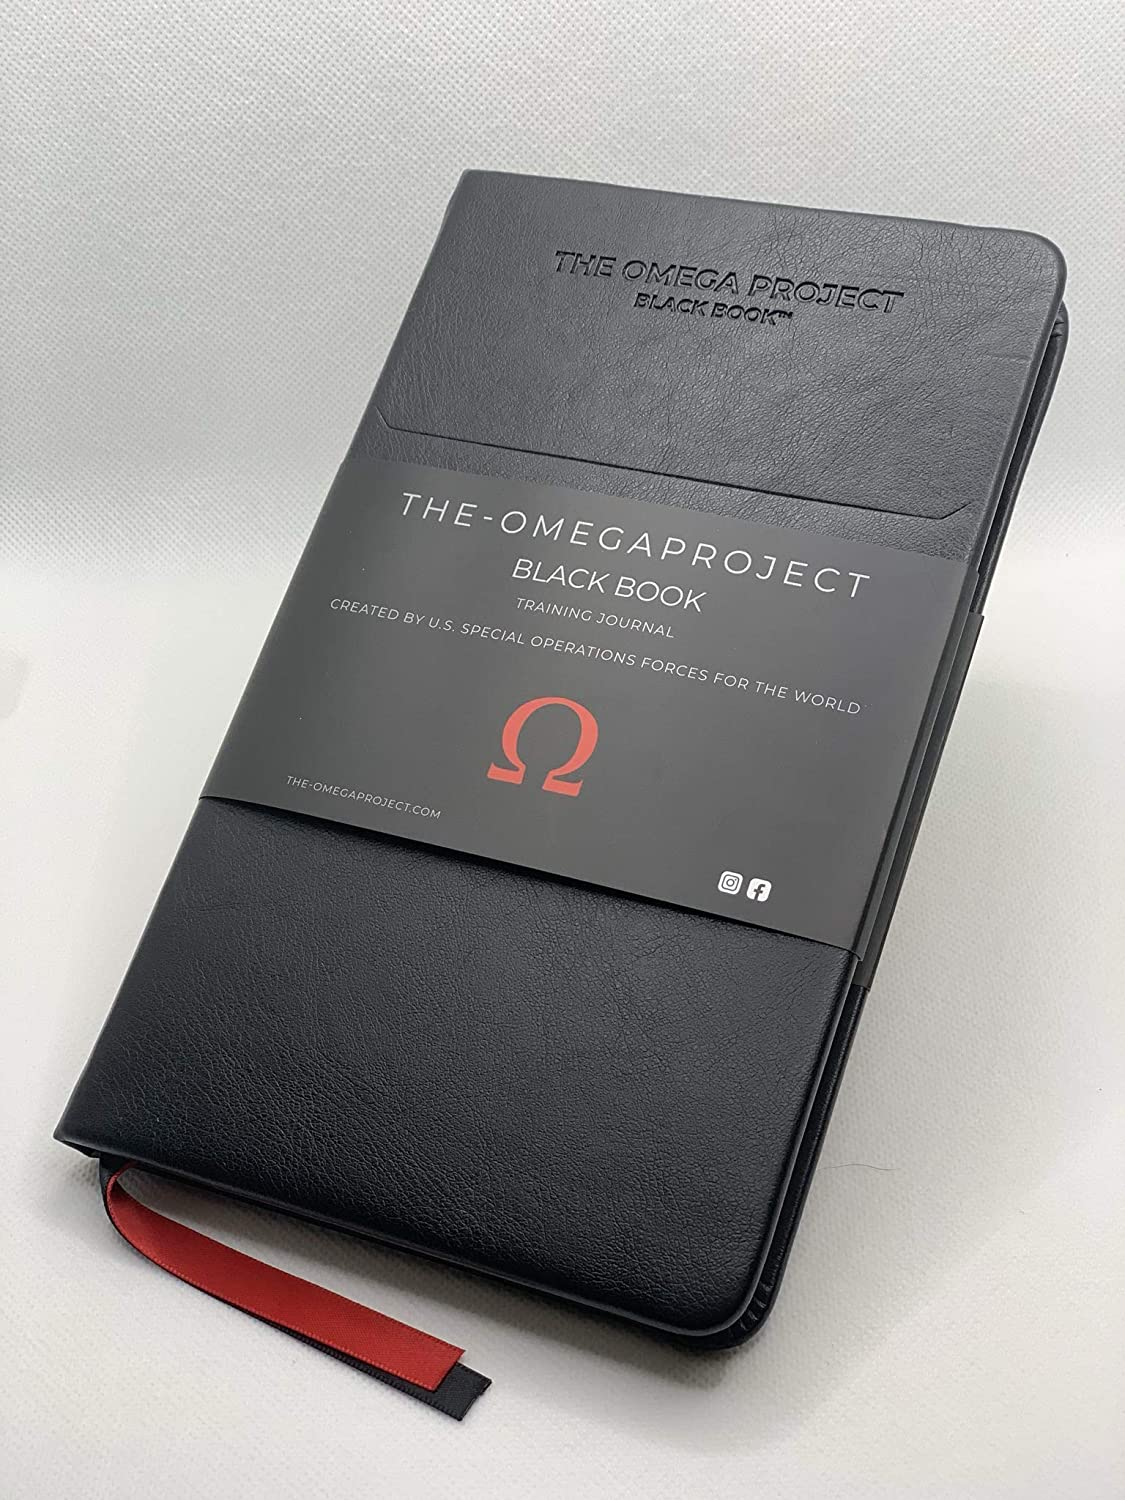 The Omega Project The Black Book Training Journal Created by US Special Operations Forces